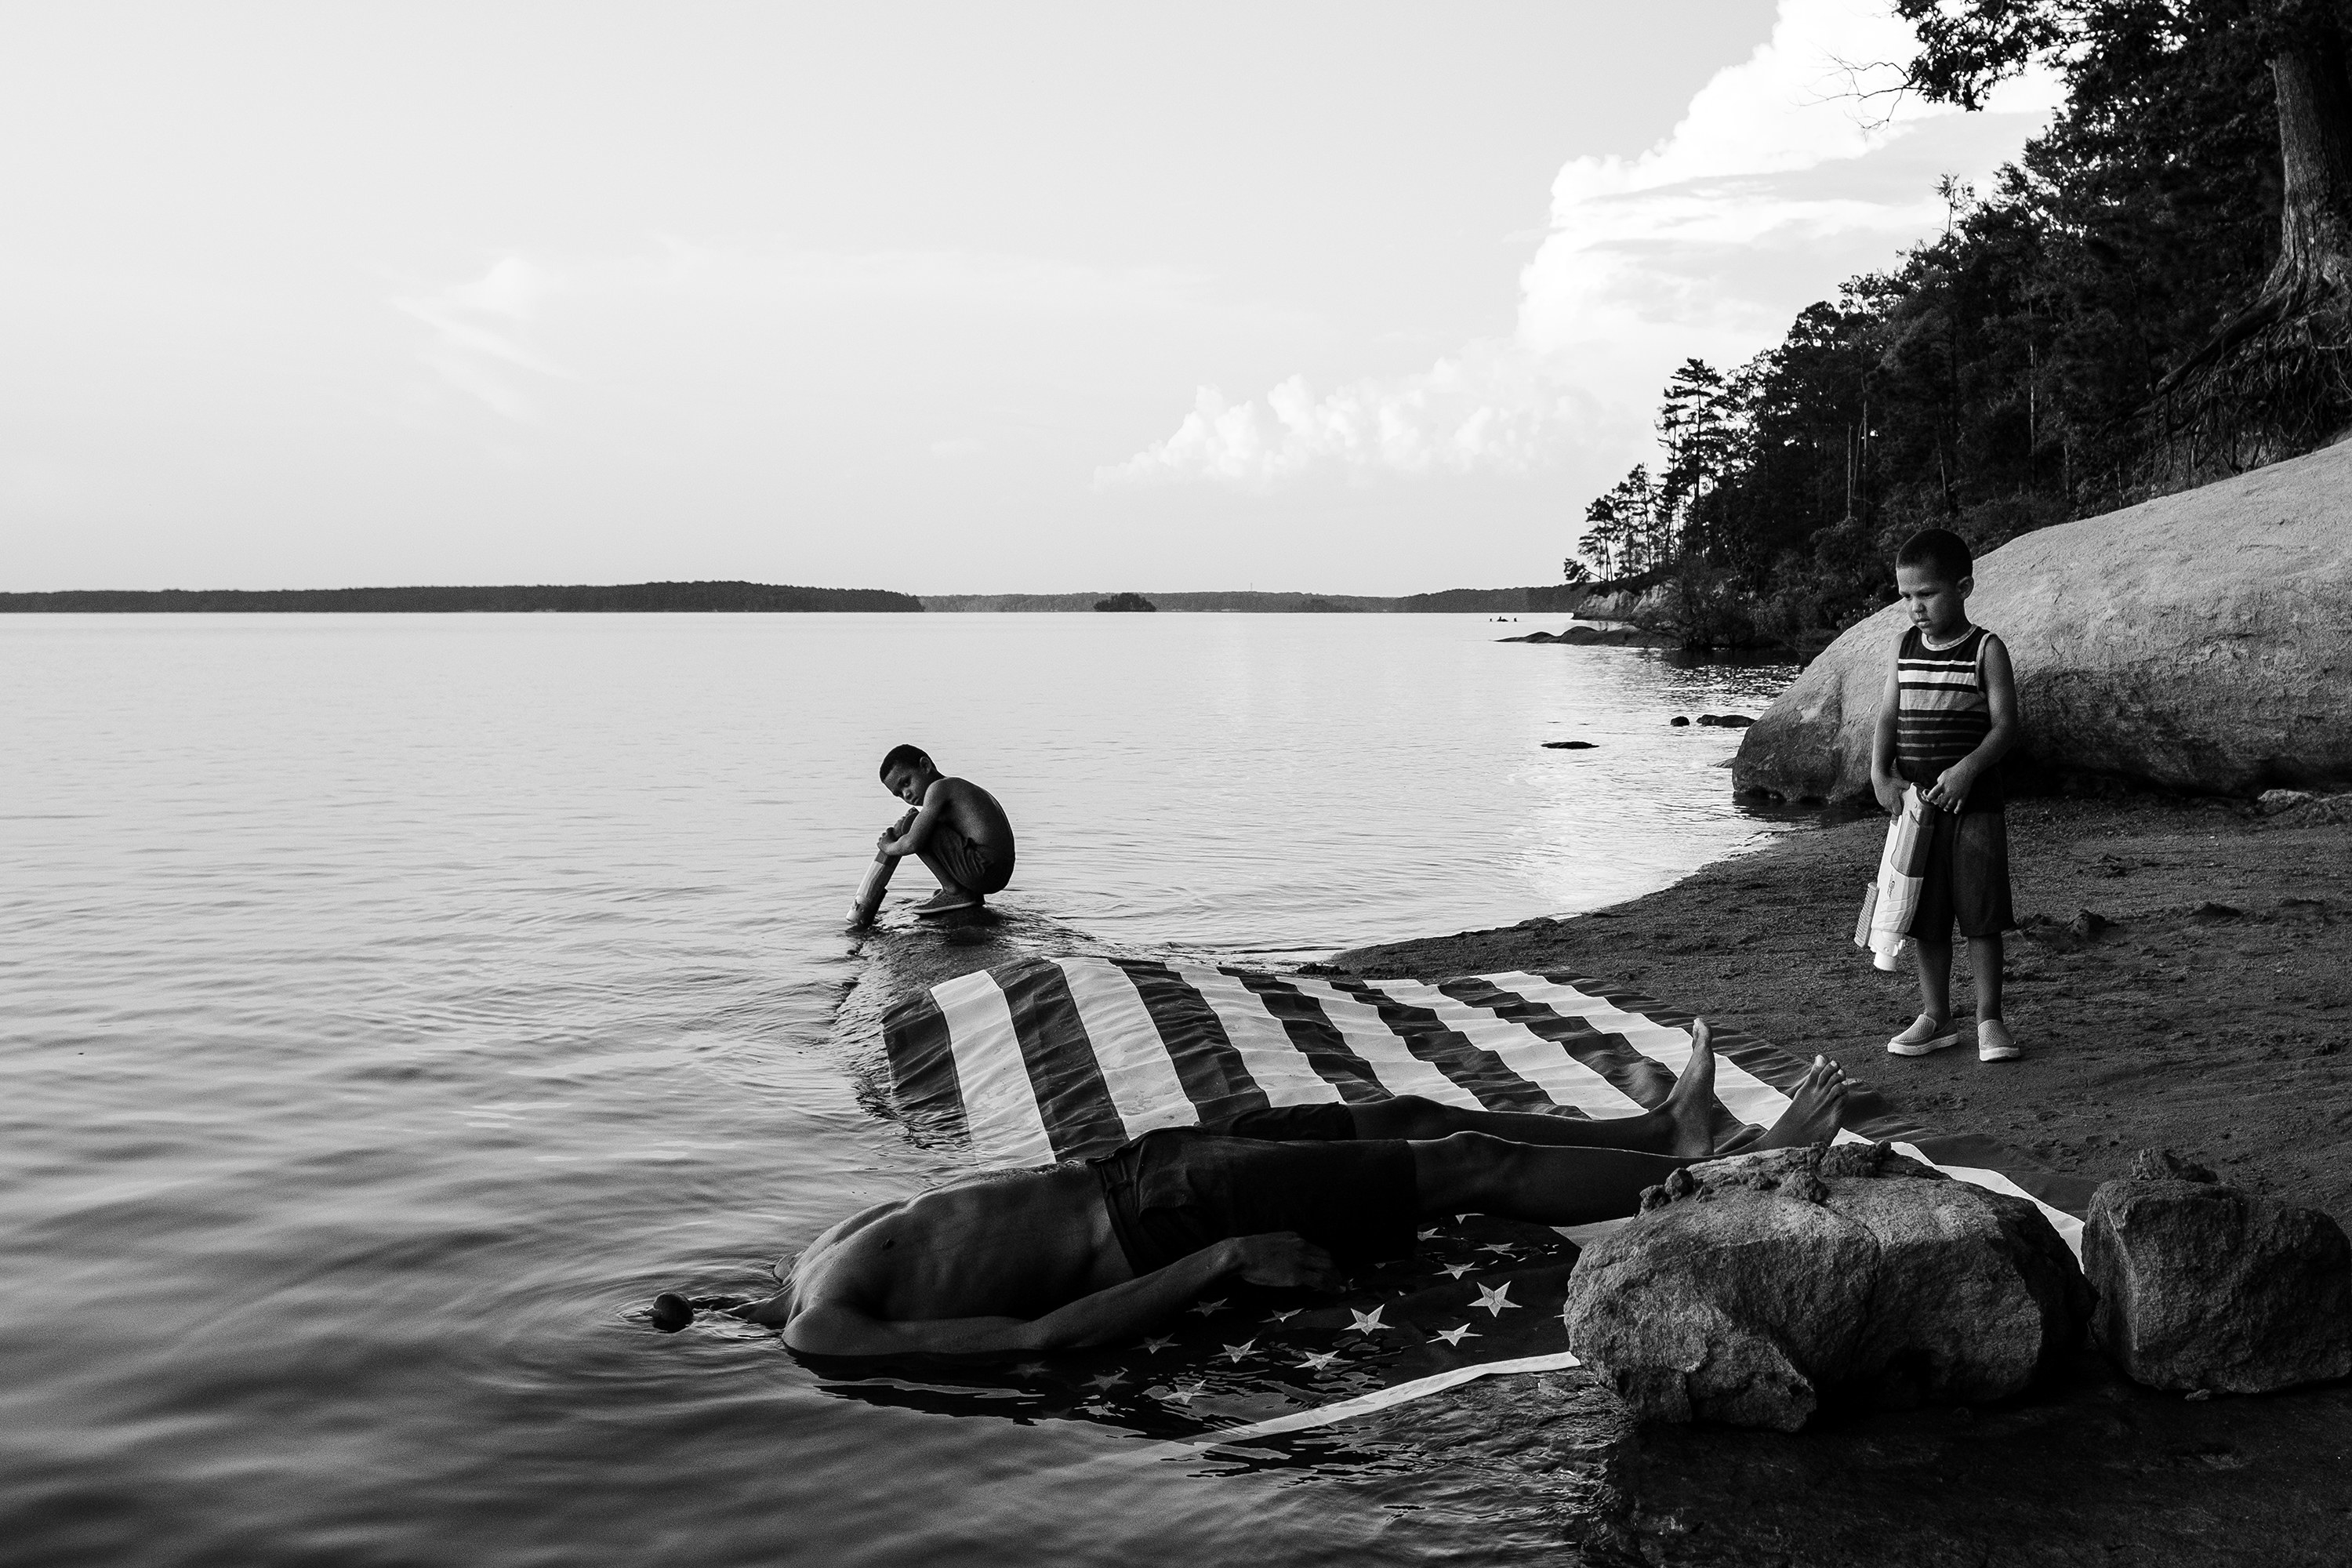 Two young Black boys watch as their father lies partially underwater, on an American flag